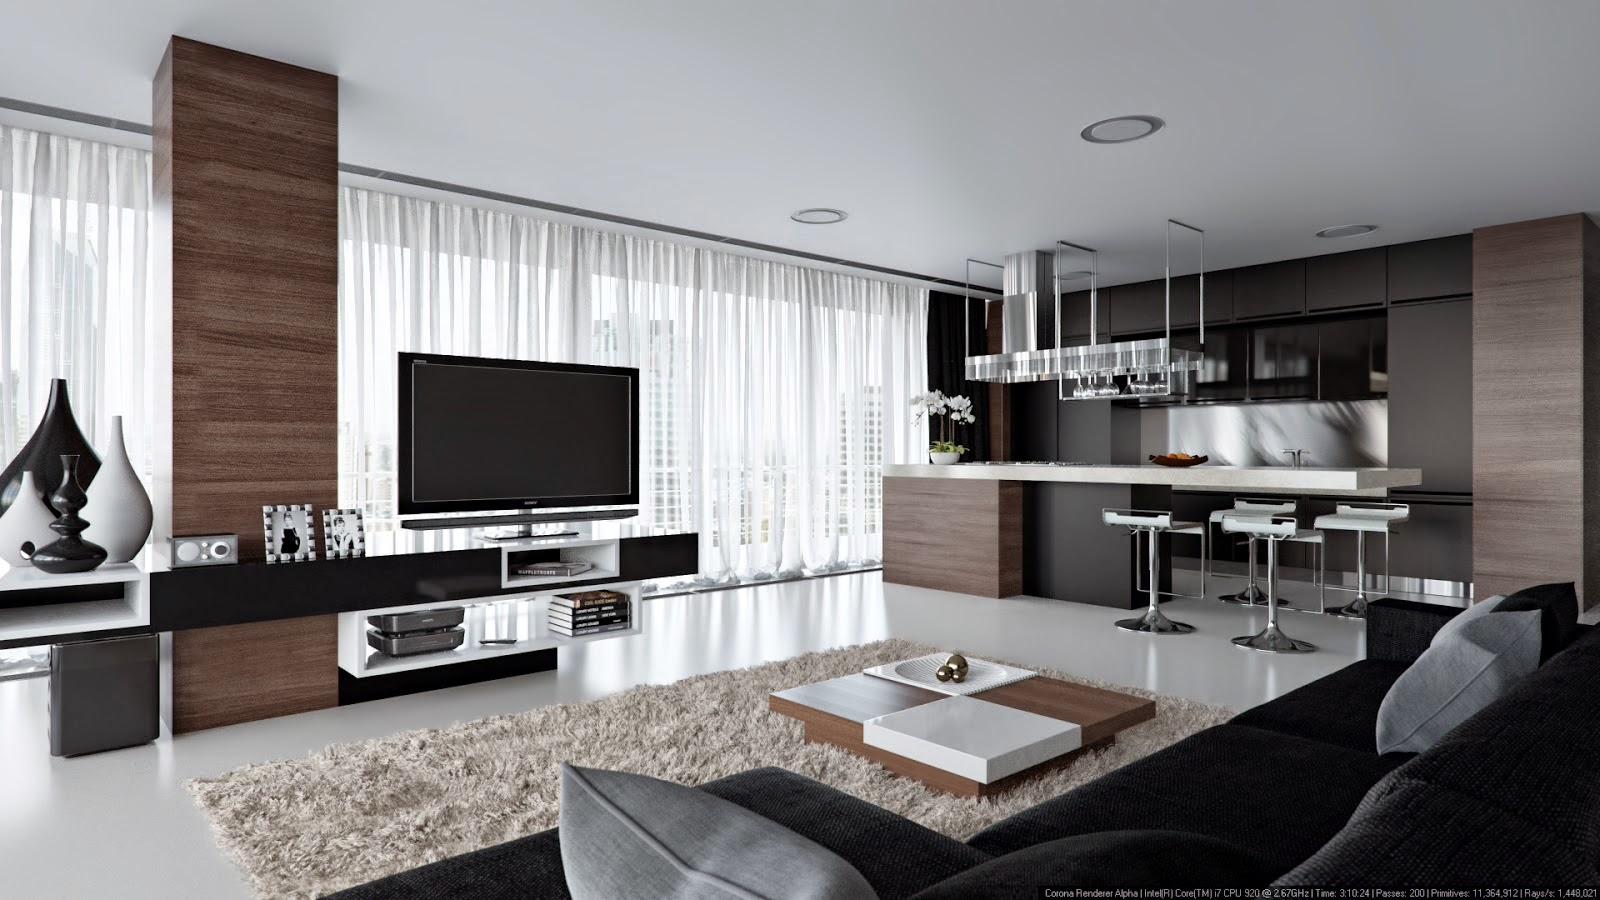 Interior Renderings With Corona Render Inspirations Area